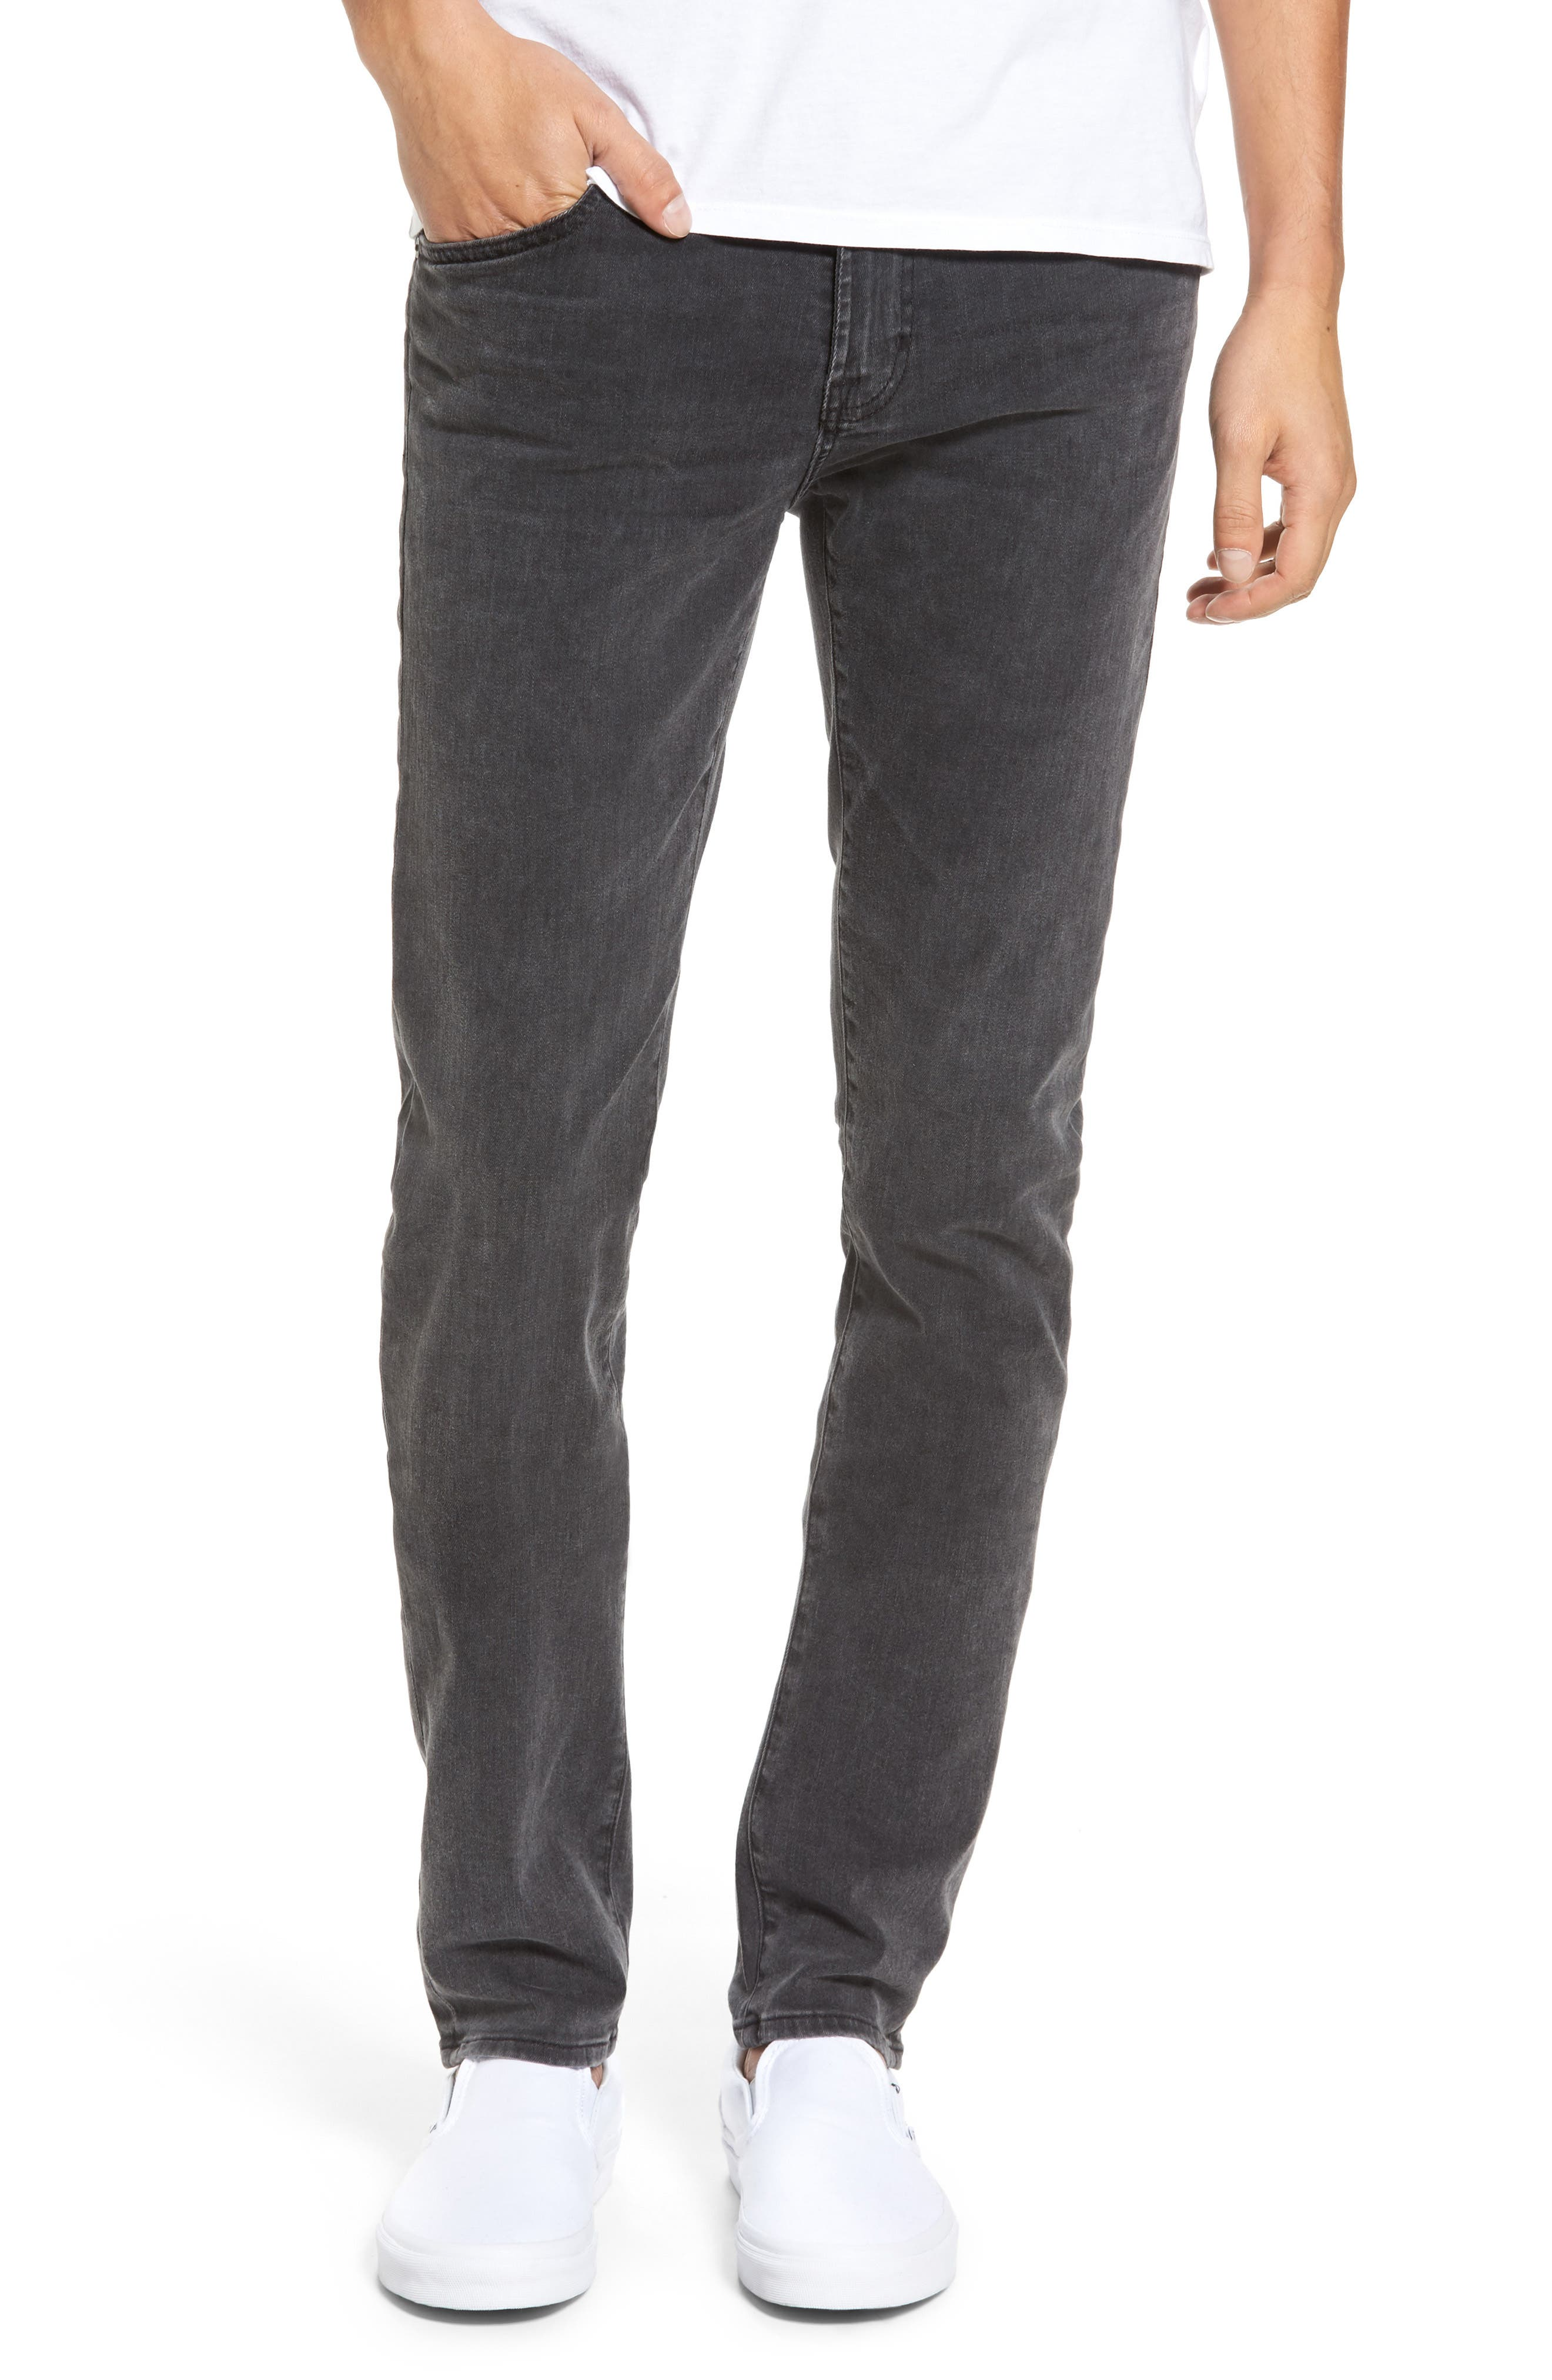 Stockton Skinny Fit Jeans,                         Main,                         color, 10 Years Black Dunes